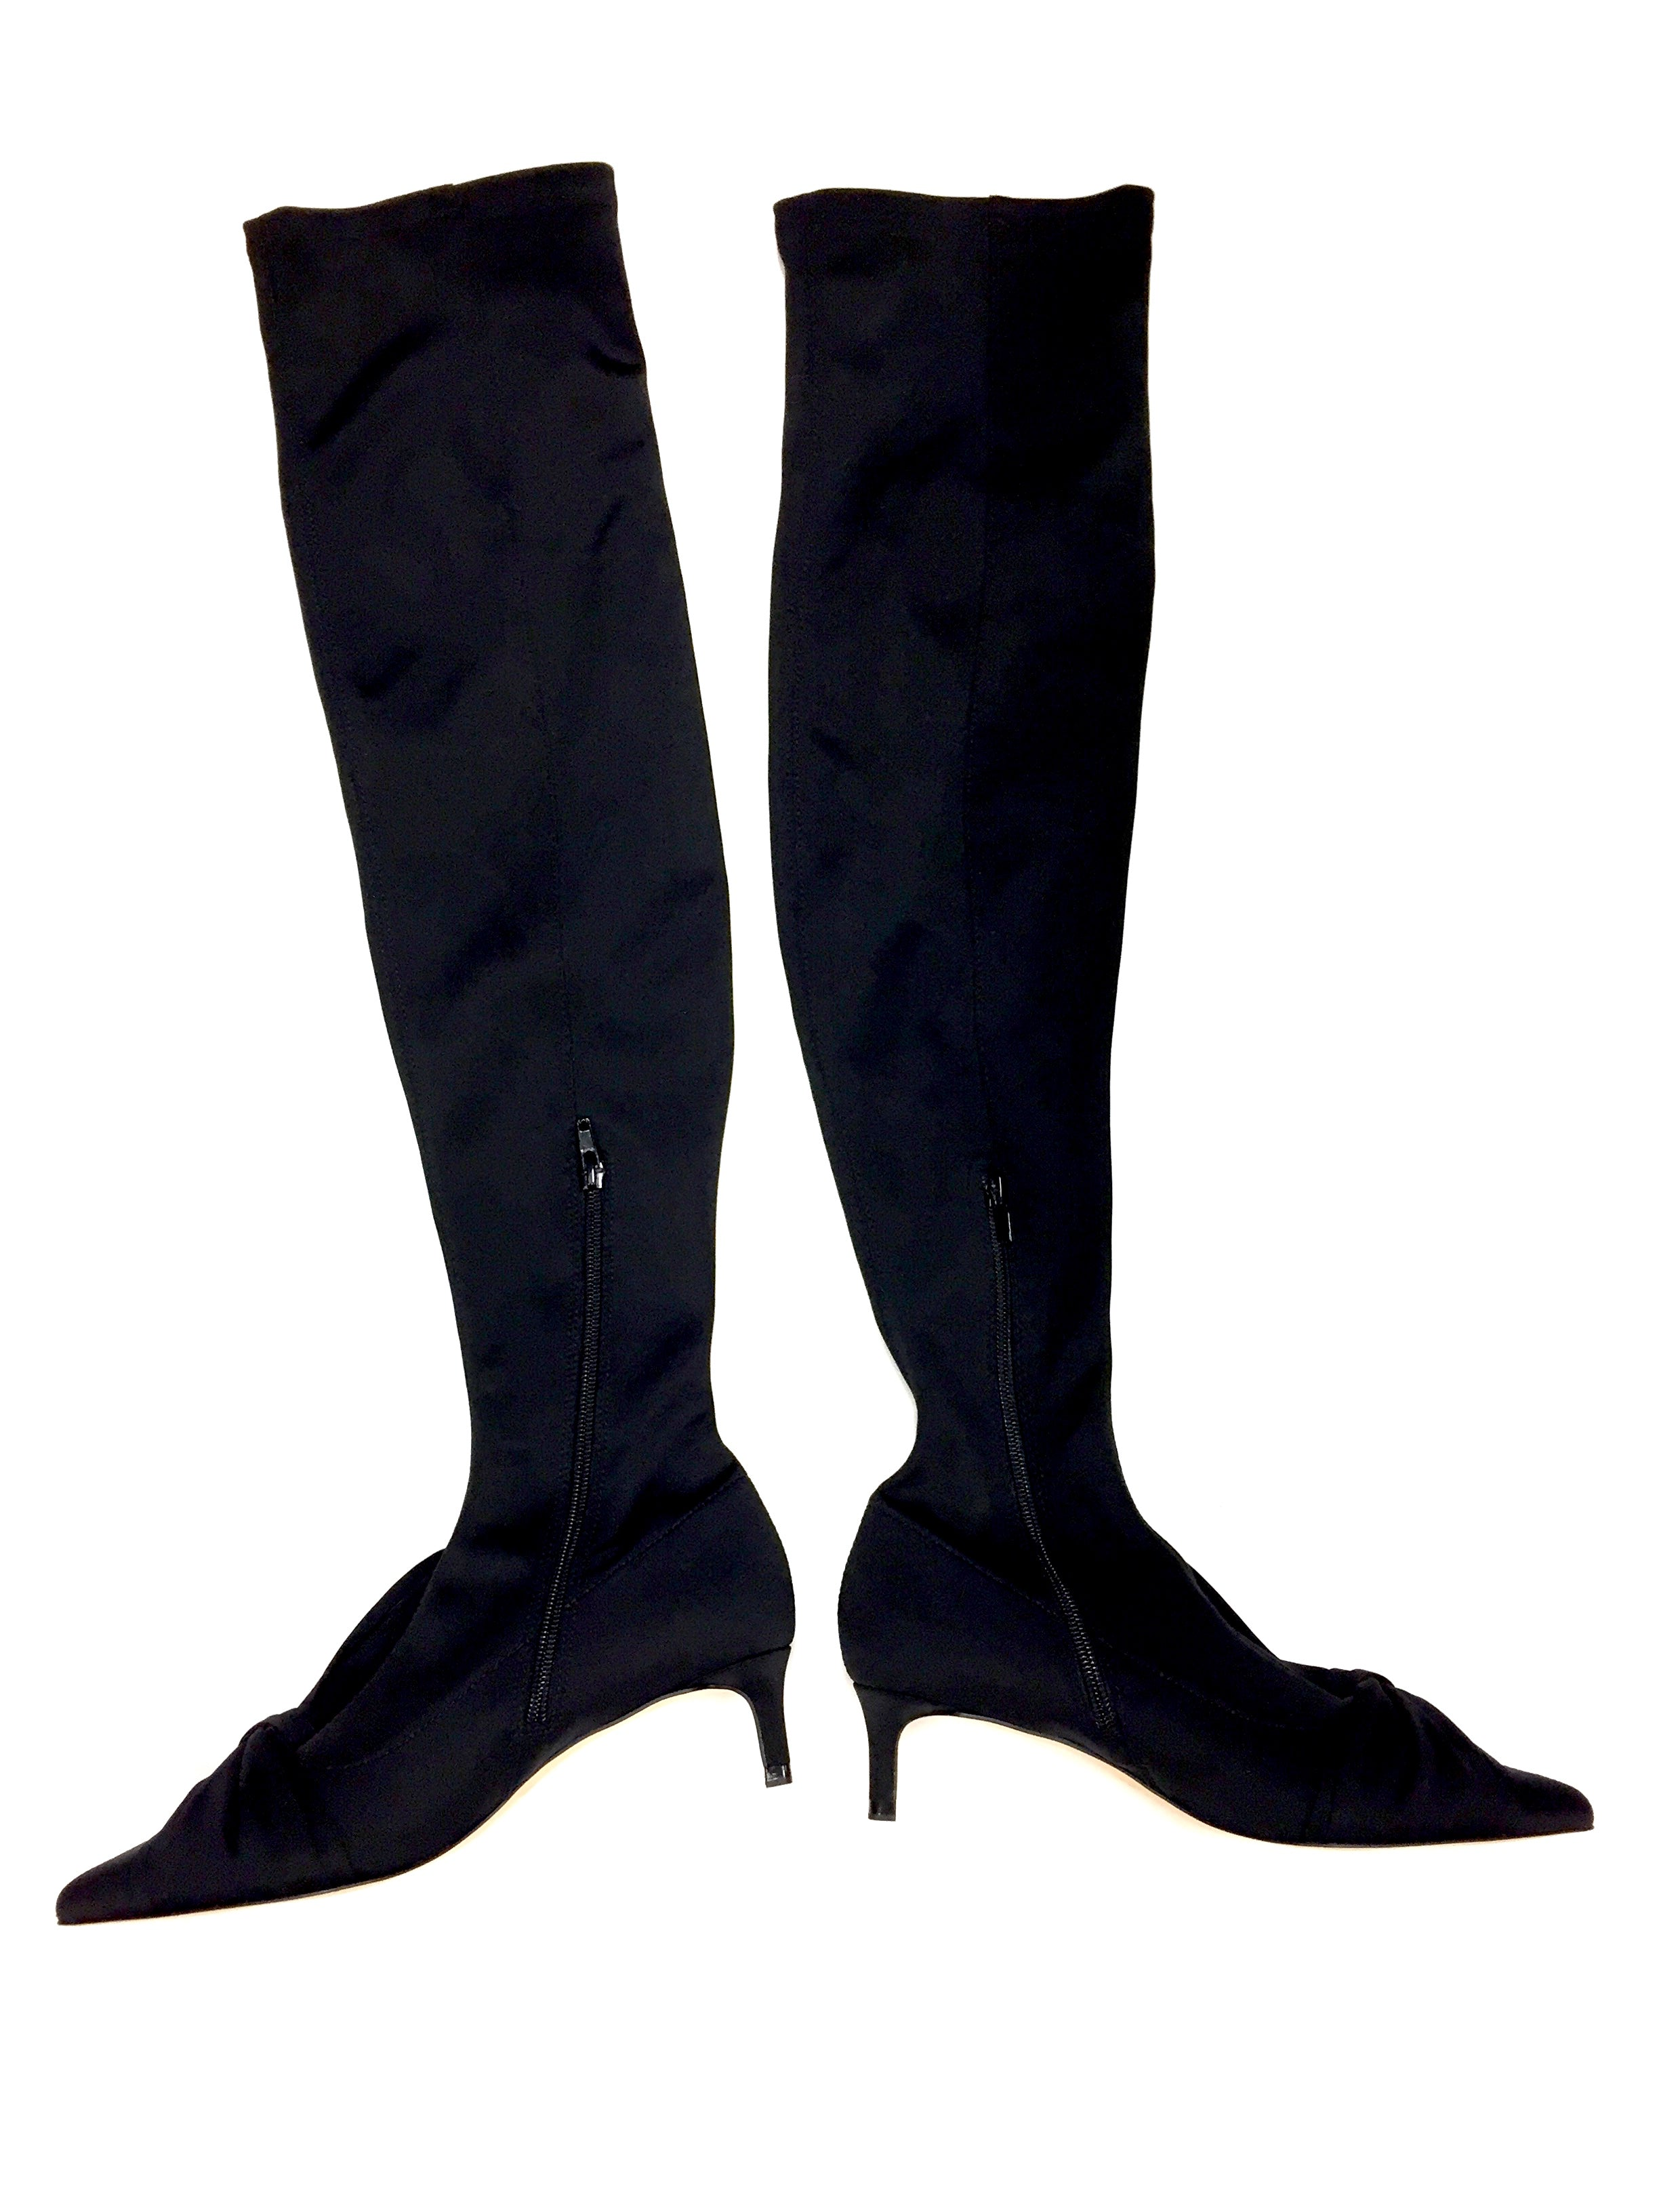 b283f85fc45 ZARA BASIC COLLECTION Black Microfiber Over-the-Heel Kitten Heel Boots  Size: 37 / 7